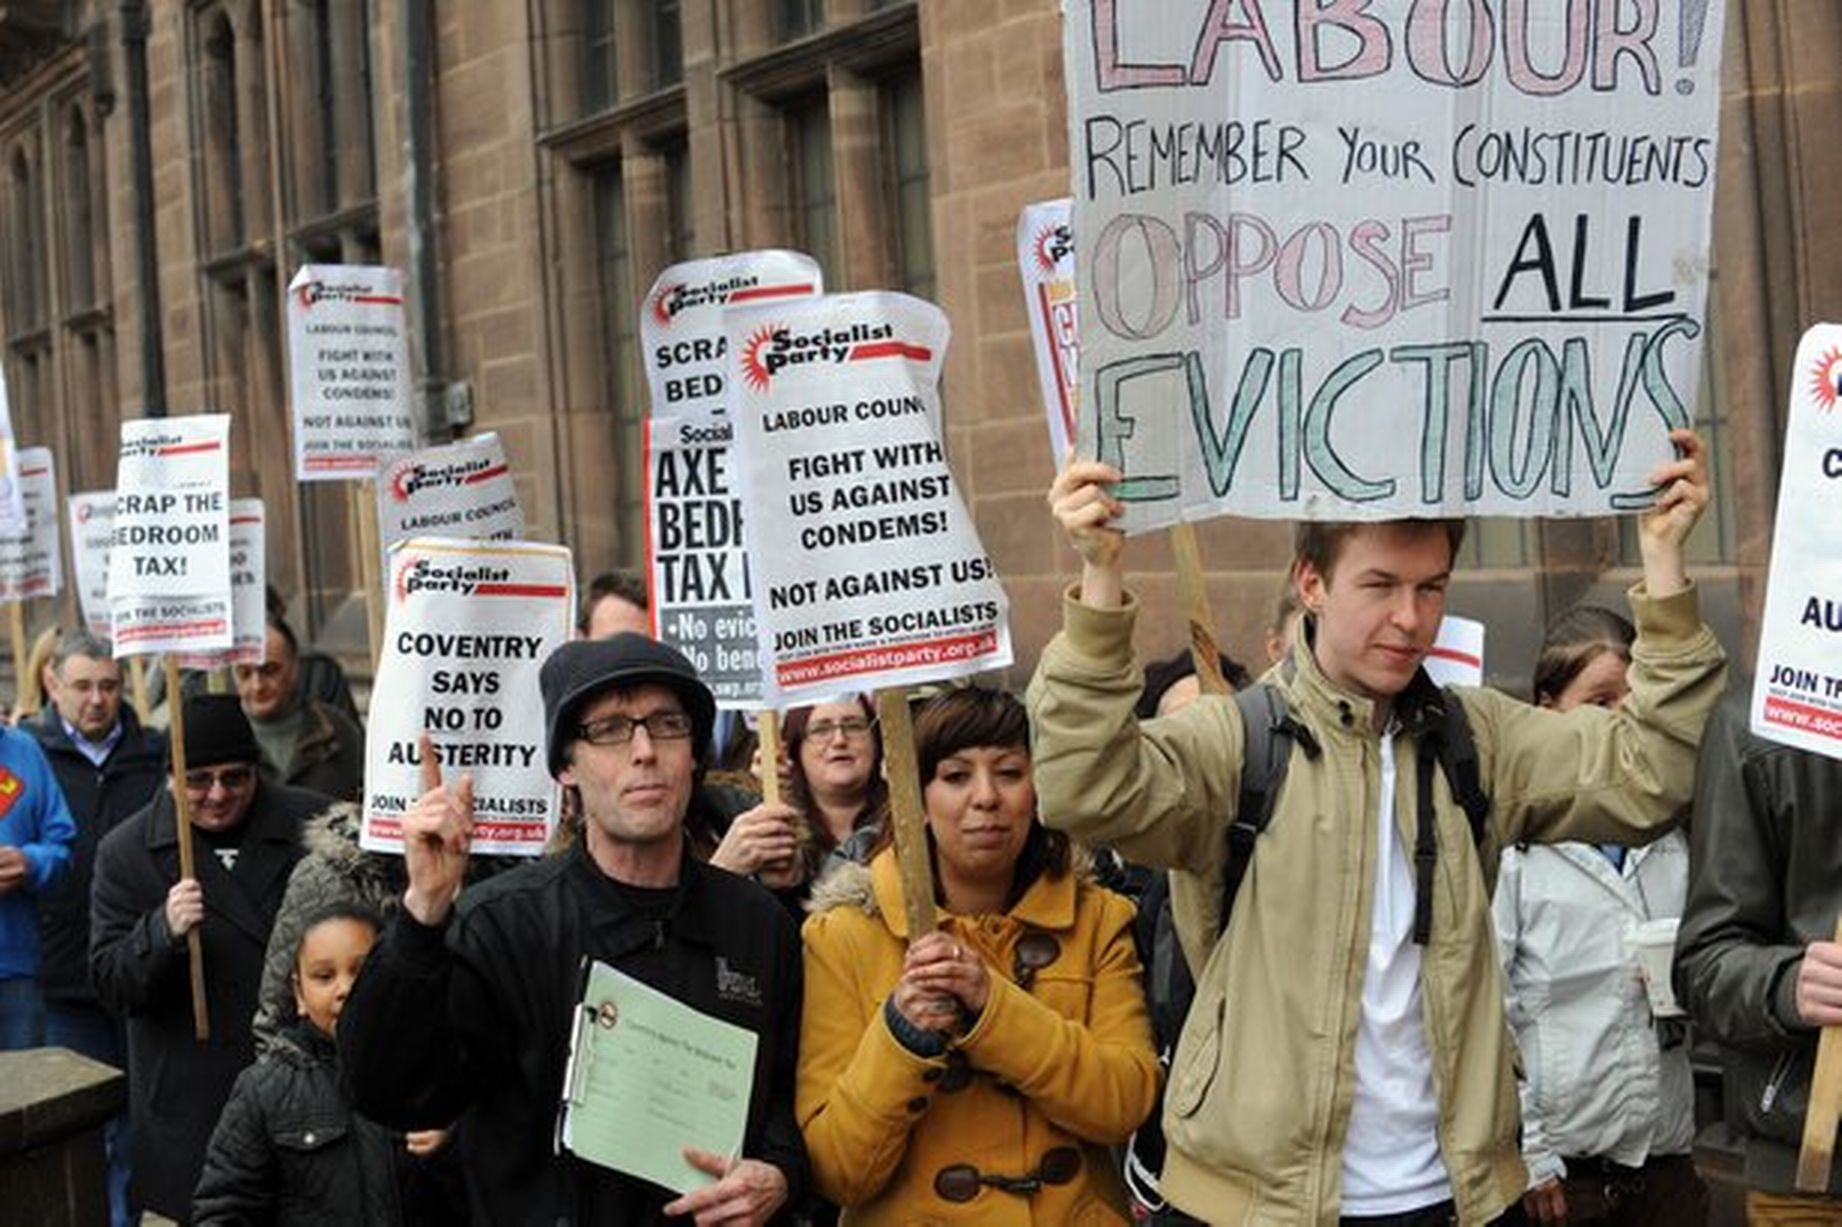 Bedroom Tax – Coventry Socialist Party